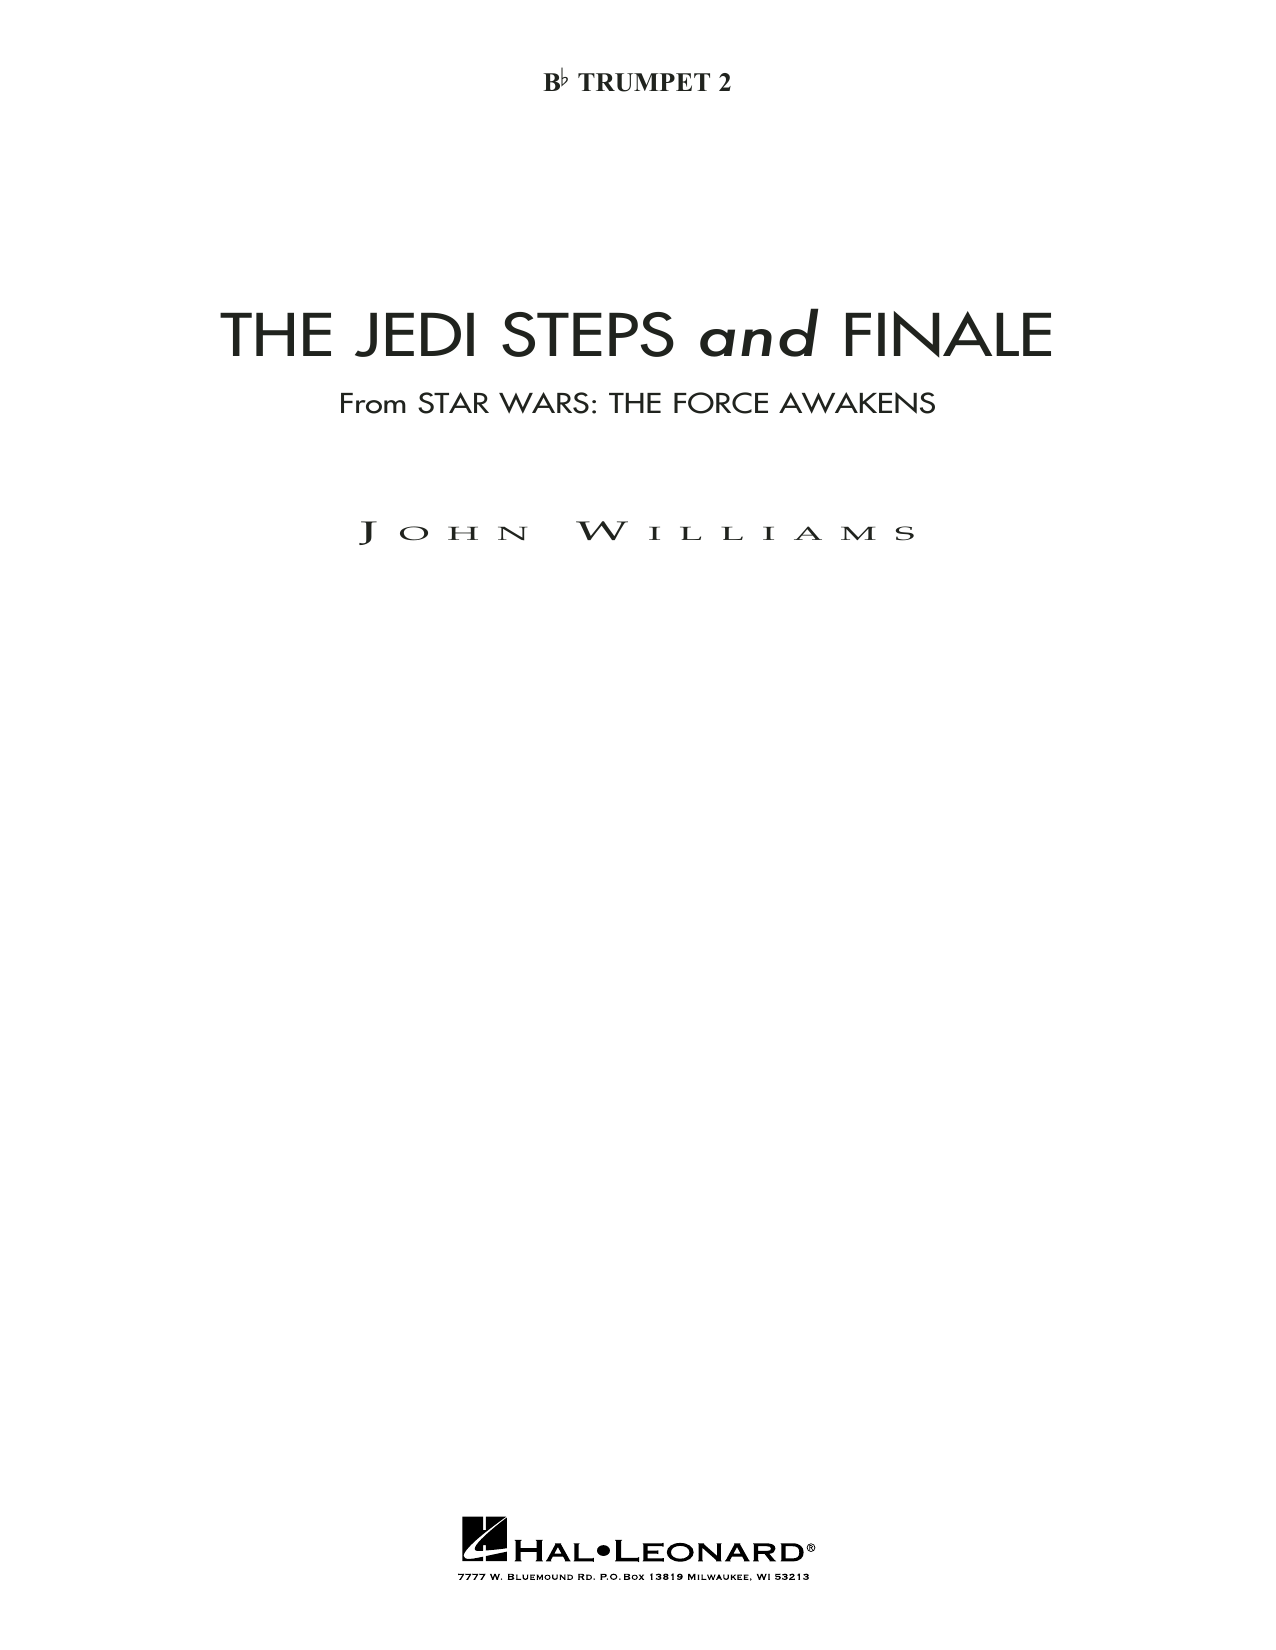 The Jedi Steps and Finale (from Star Wars: The Force Awakens) - Bb Trumpet 2 (sub. C Tpt. 2) (Concert Band)